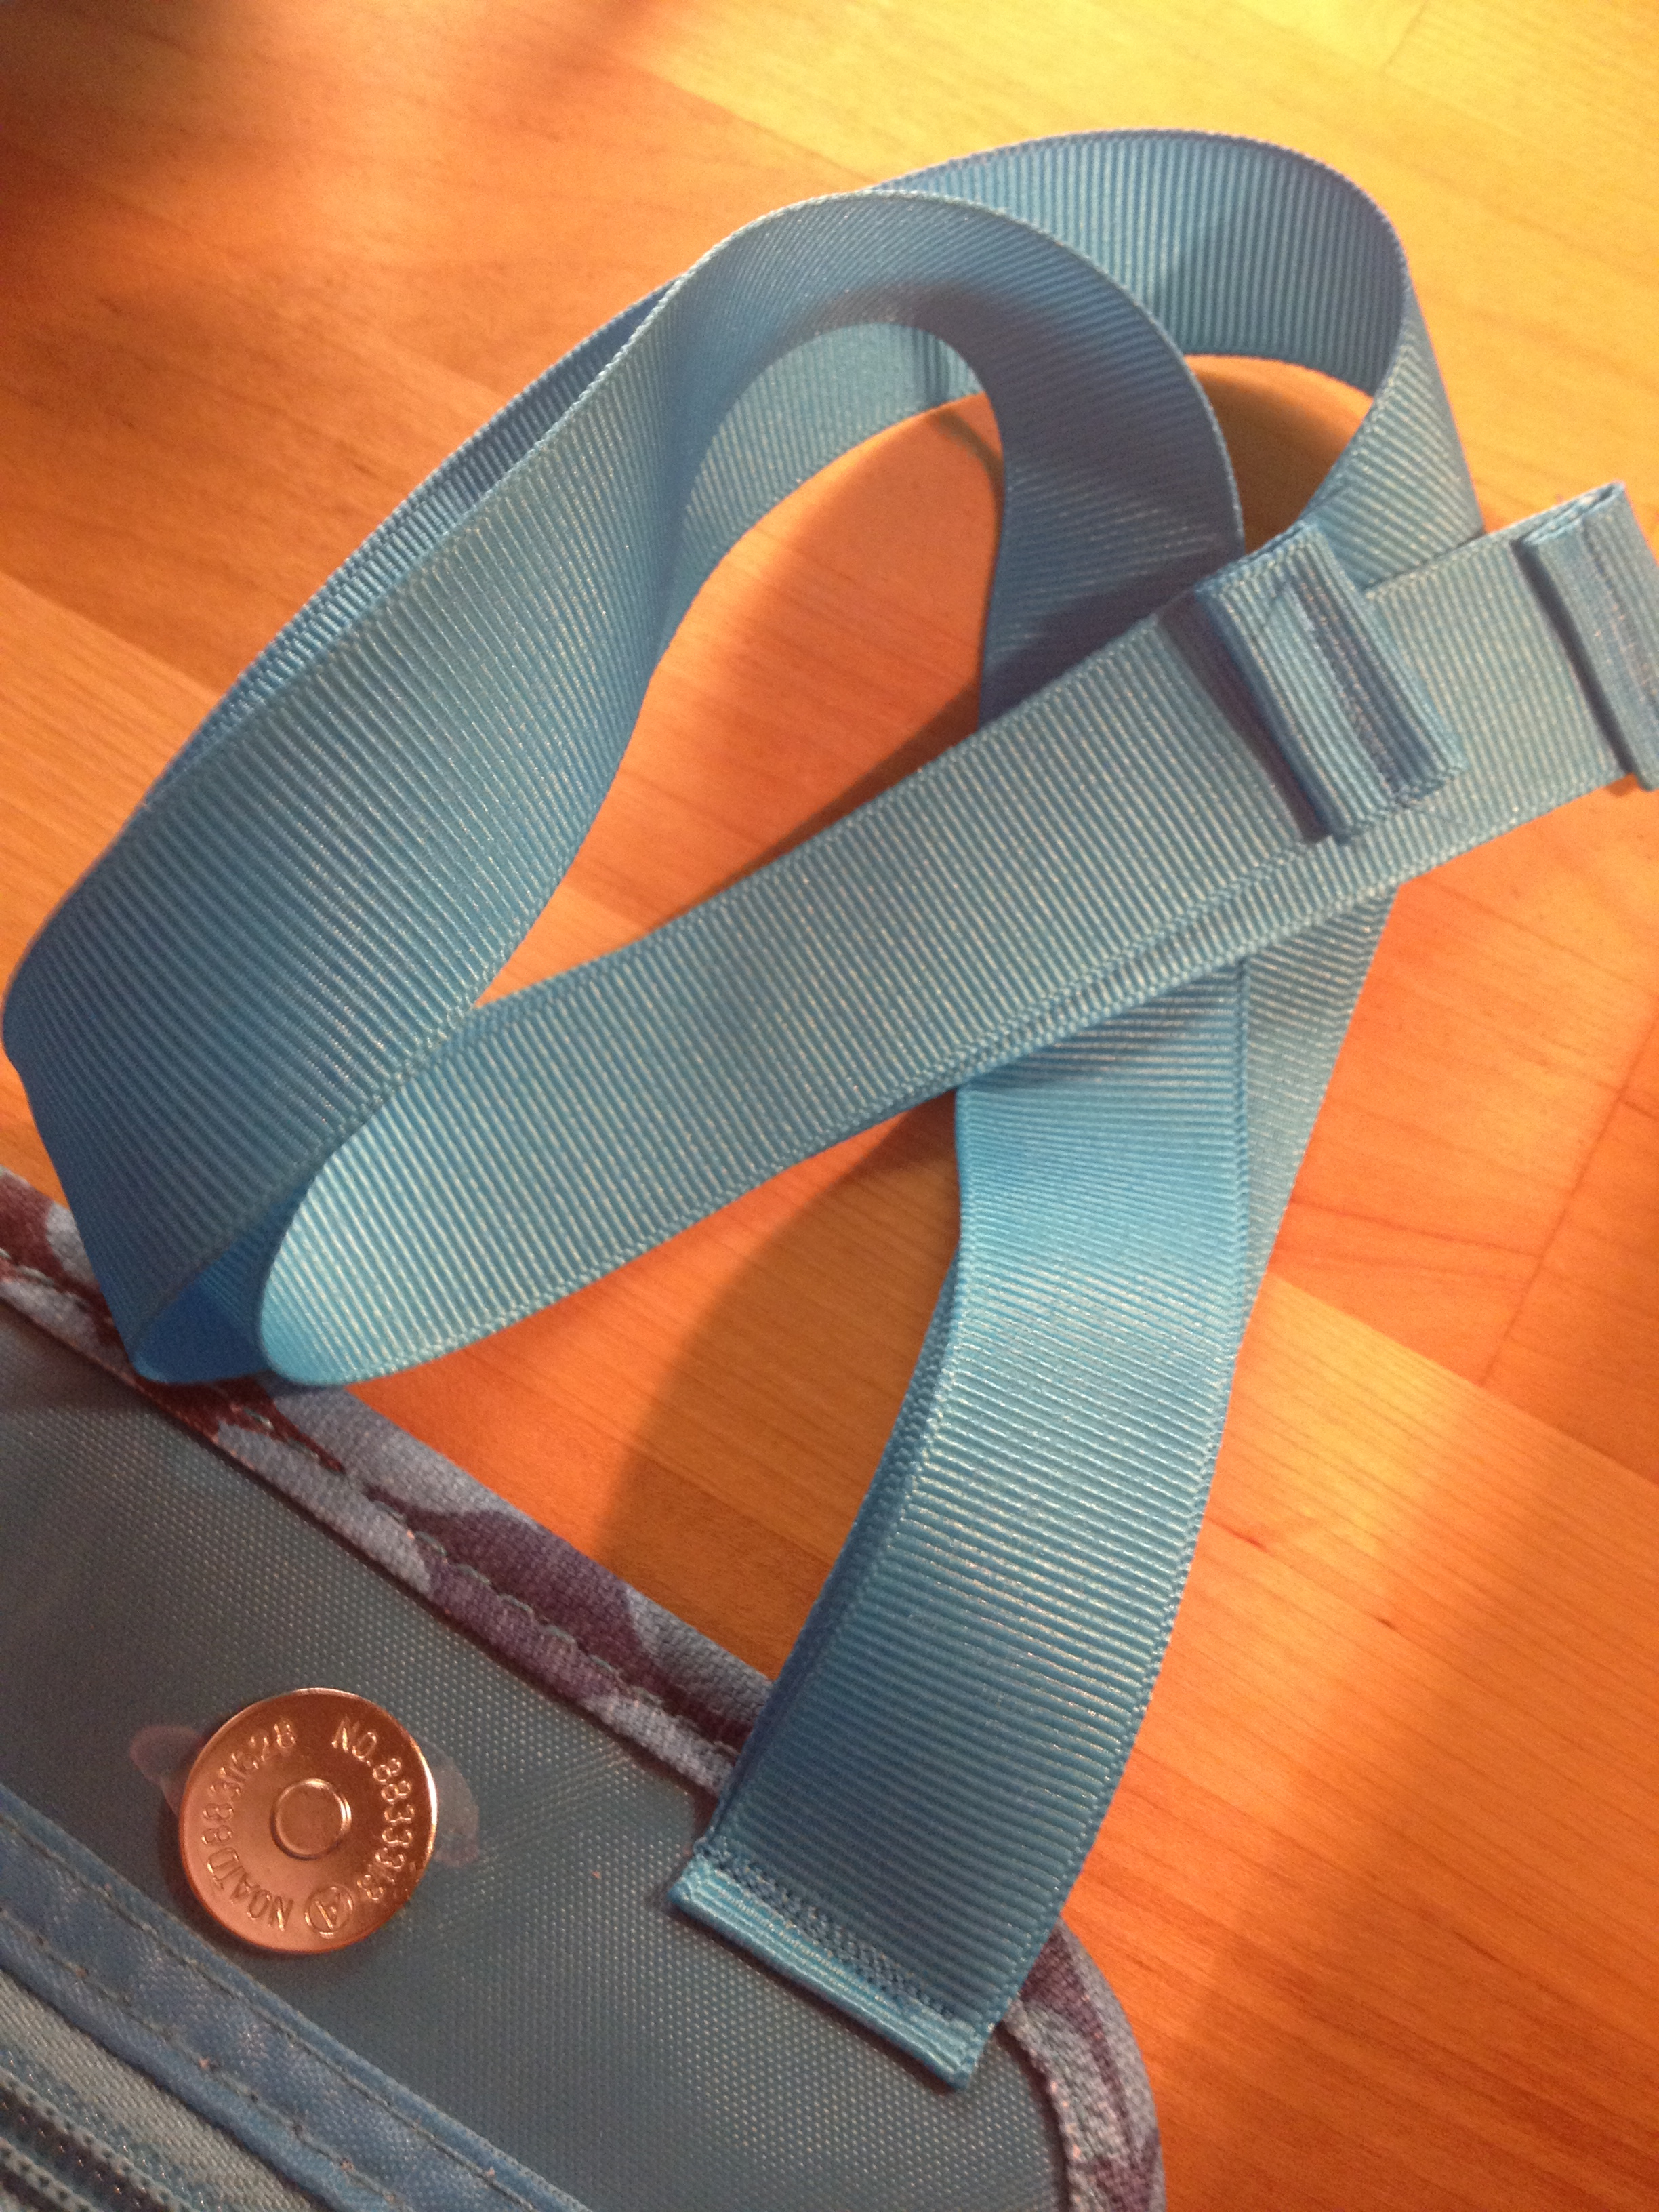 I hemmed the ribbons and them sewed them to the top of the organizer.